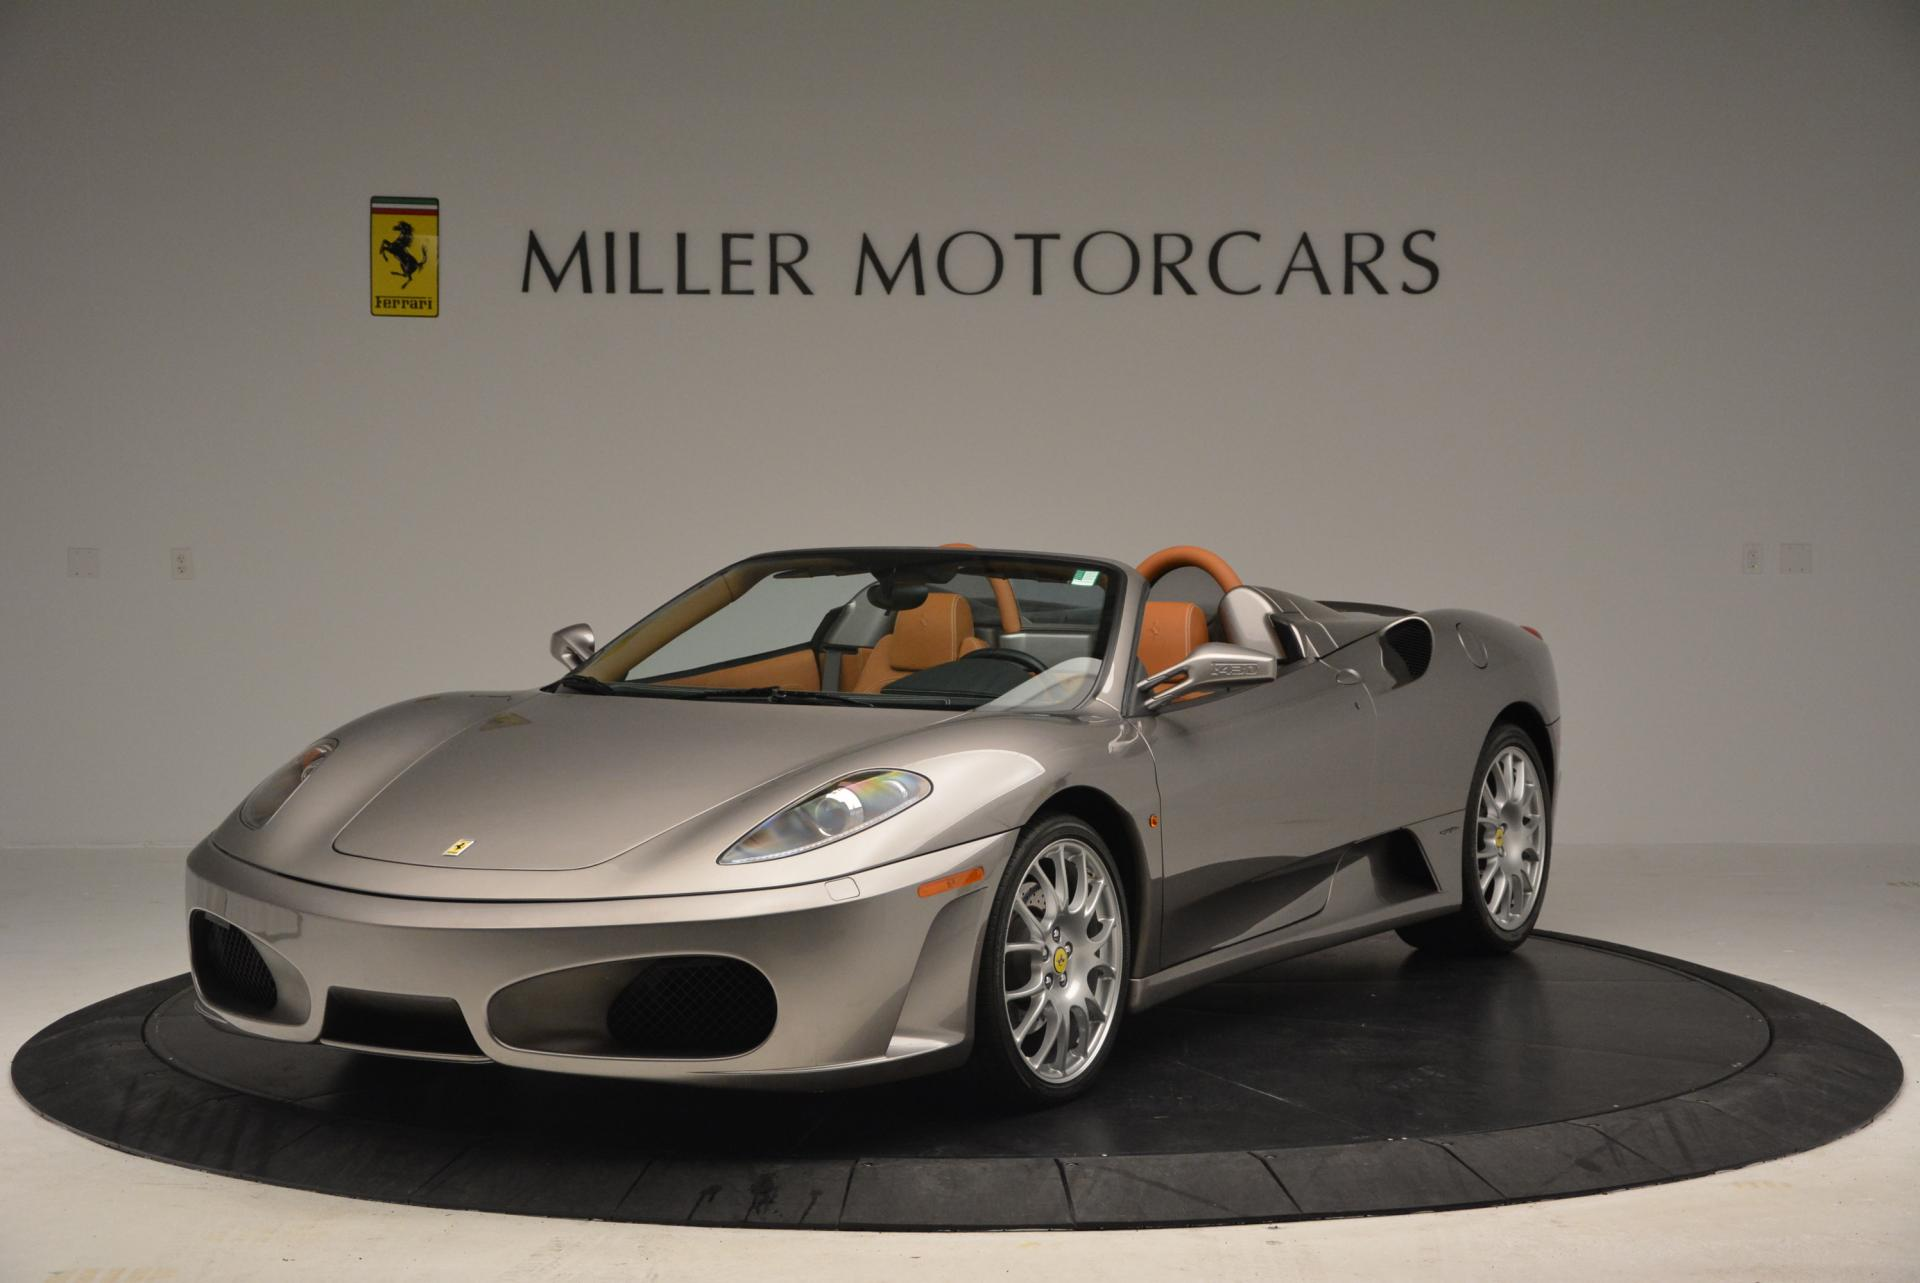 Used 2005 Ferrari F430 Spider 6-Speed Manual for sale Sold at McLaren Greenwich in Greenwich CT 06830 1